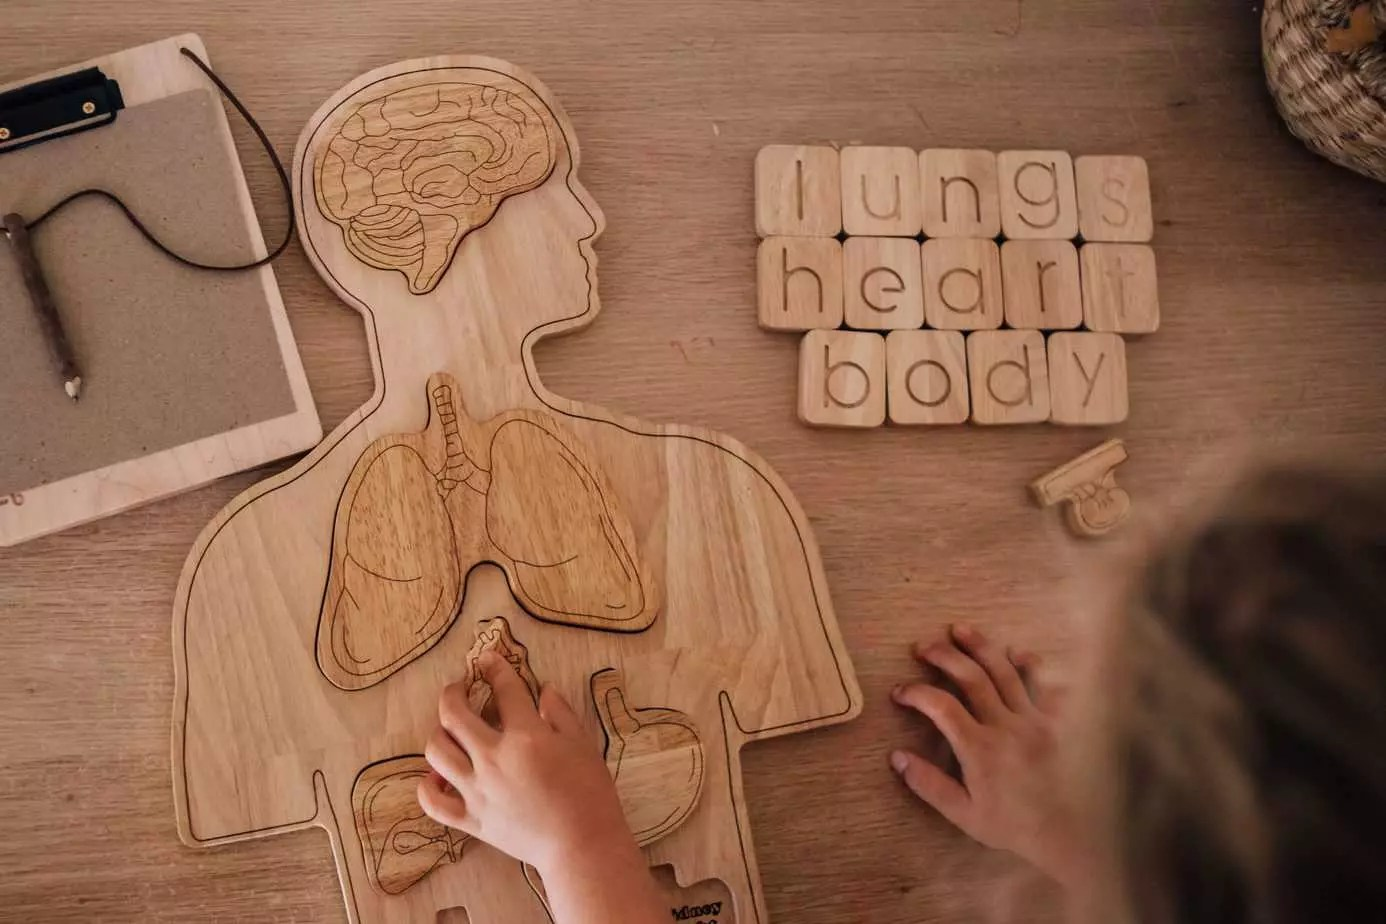 Wooden Anatomy Human Body Puzzle Growing Kind